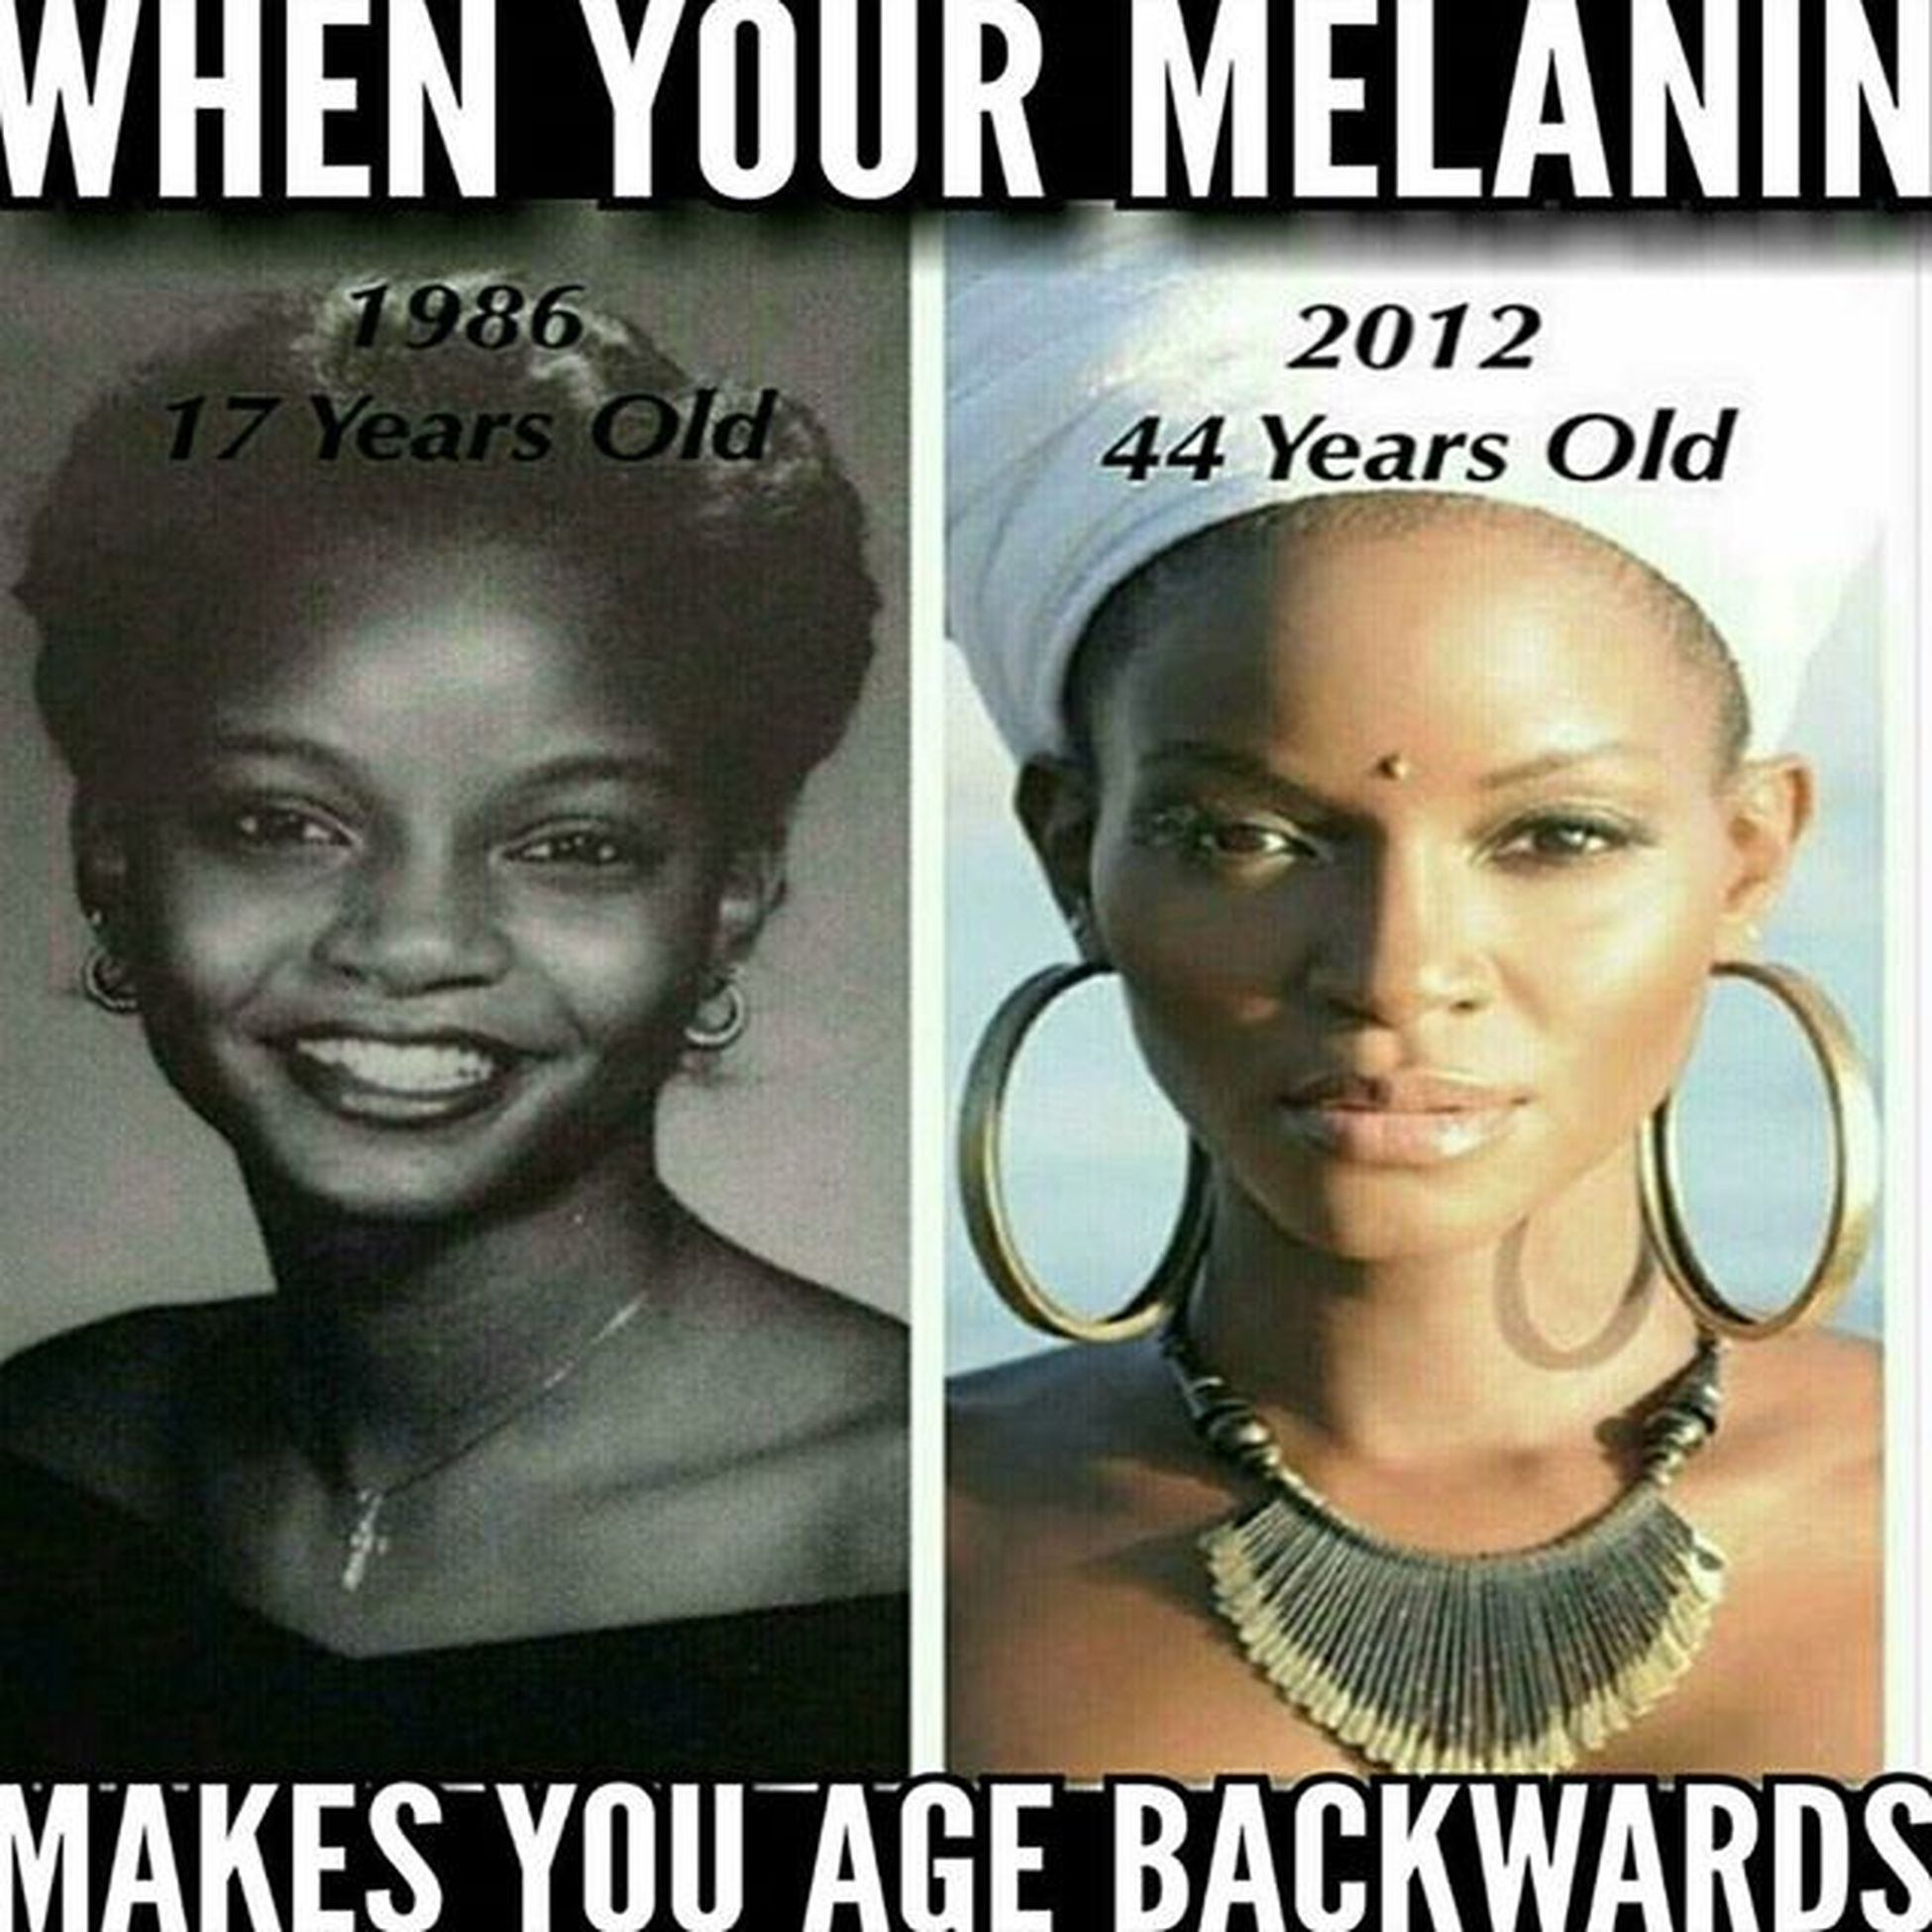 I'm not intentionally dissing any other race, but can your skin do this? I don't think so! We don't get wrinkles! Teamnowrinkles Myblackdontcrack Melanin Africanqueens Blackgoddesses Melaninonfleek Chocolateladies Blackgirlsrocks Myblackisbeautiful Dontforgetevolutionaryprocesses Becauseyallneverhadachance